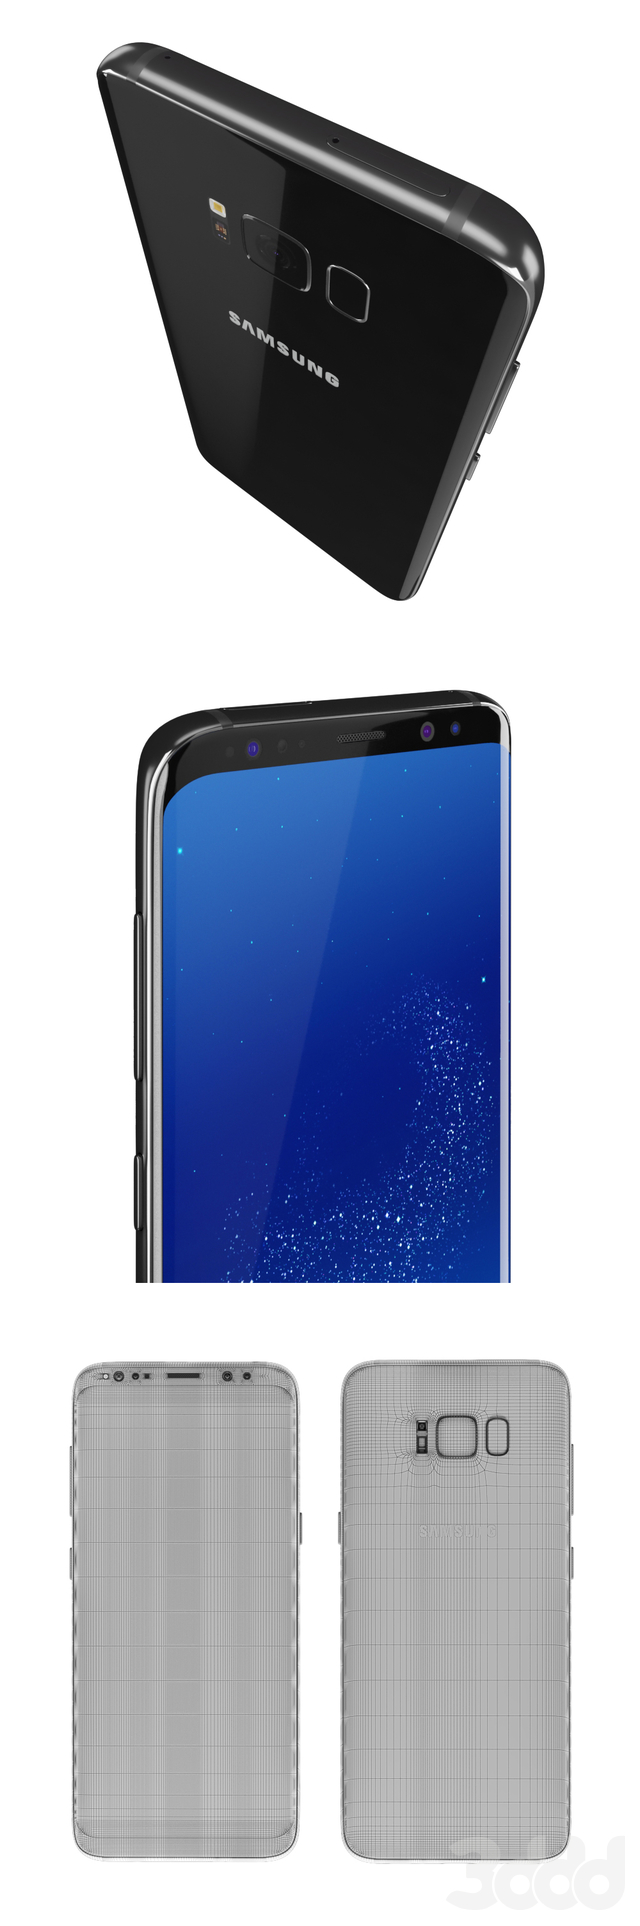 Samsung Galaxy S8 ALL colors